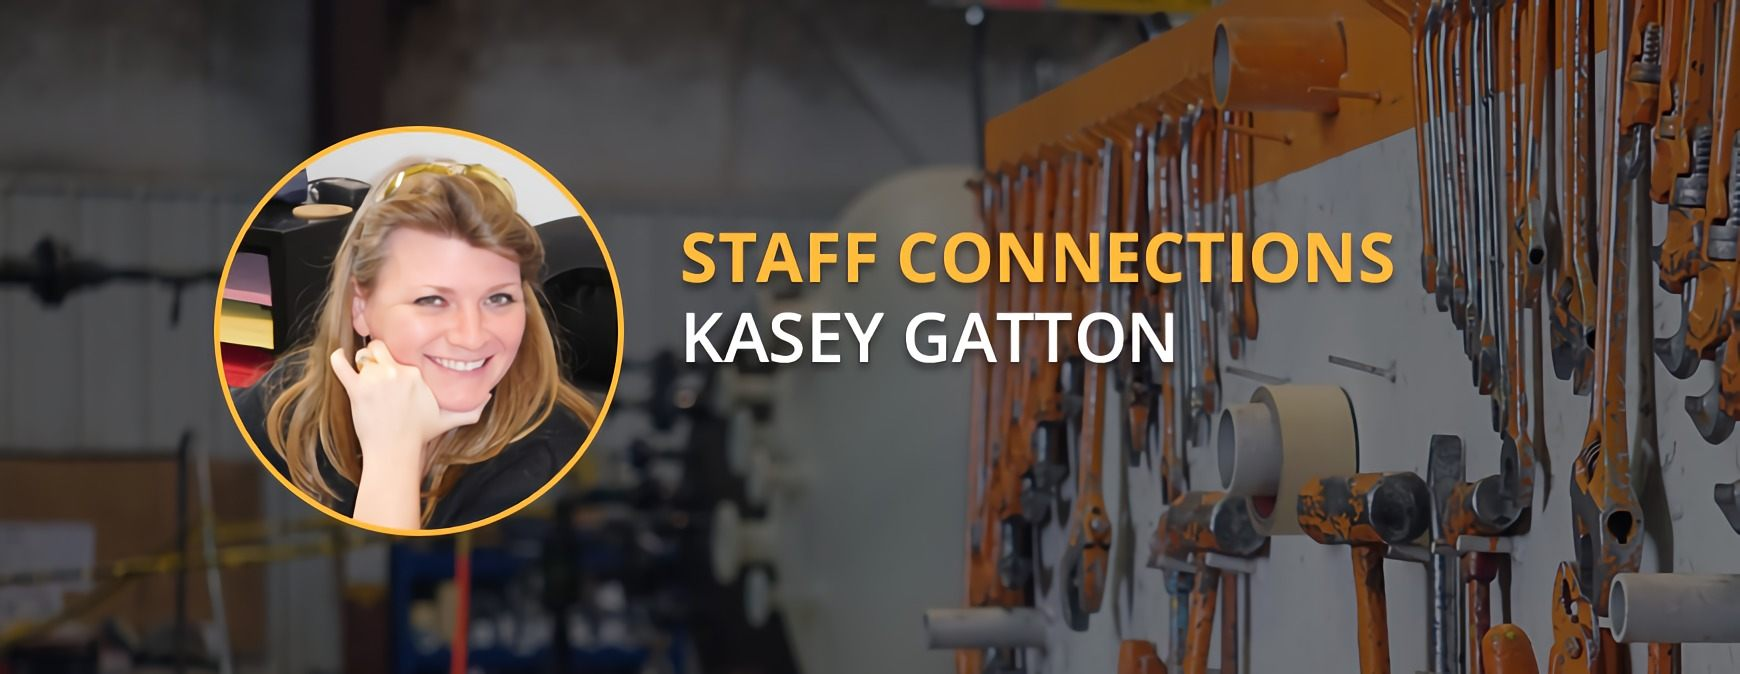 Kasey Gatton staff connection